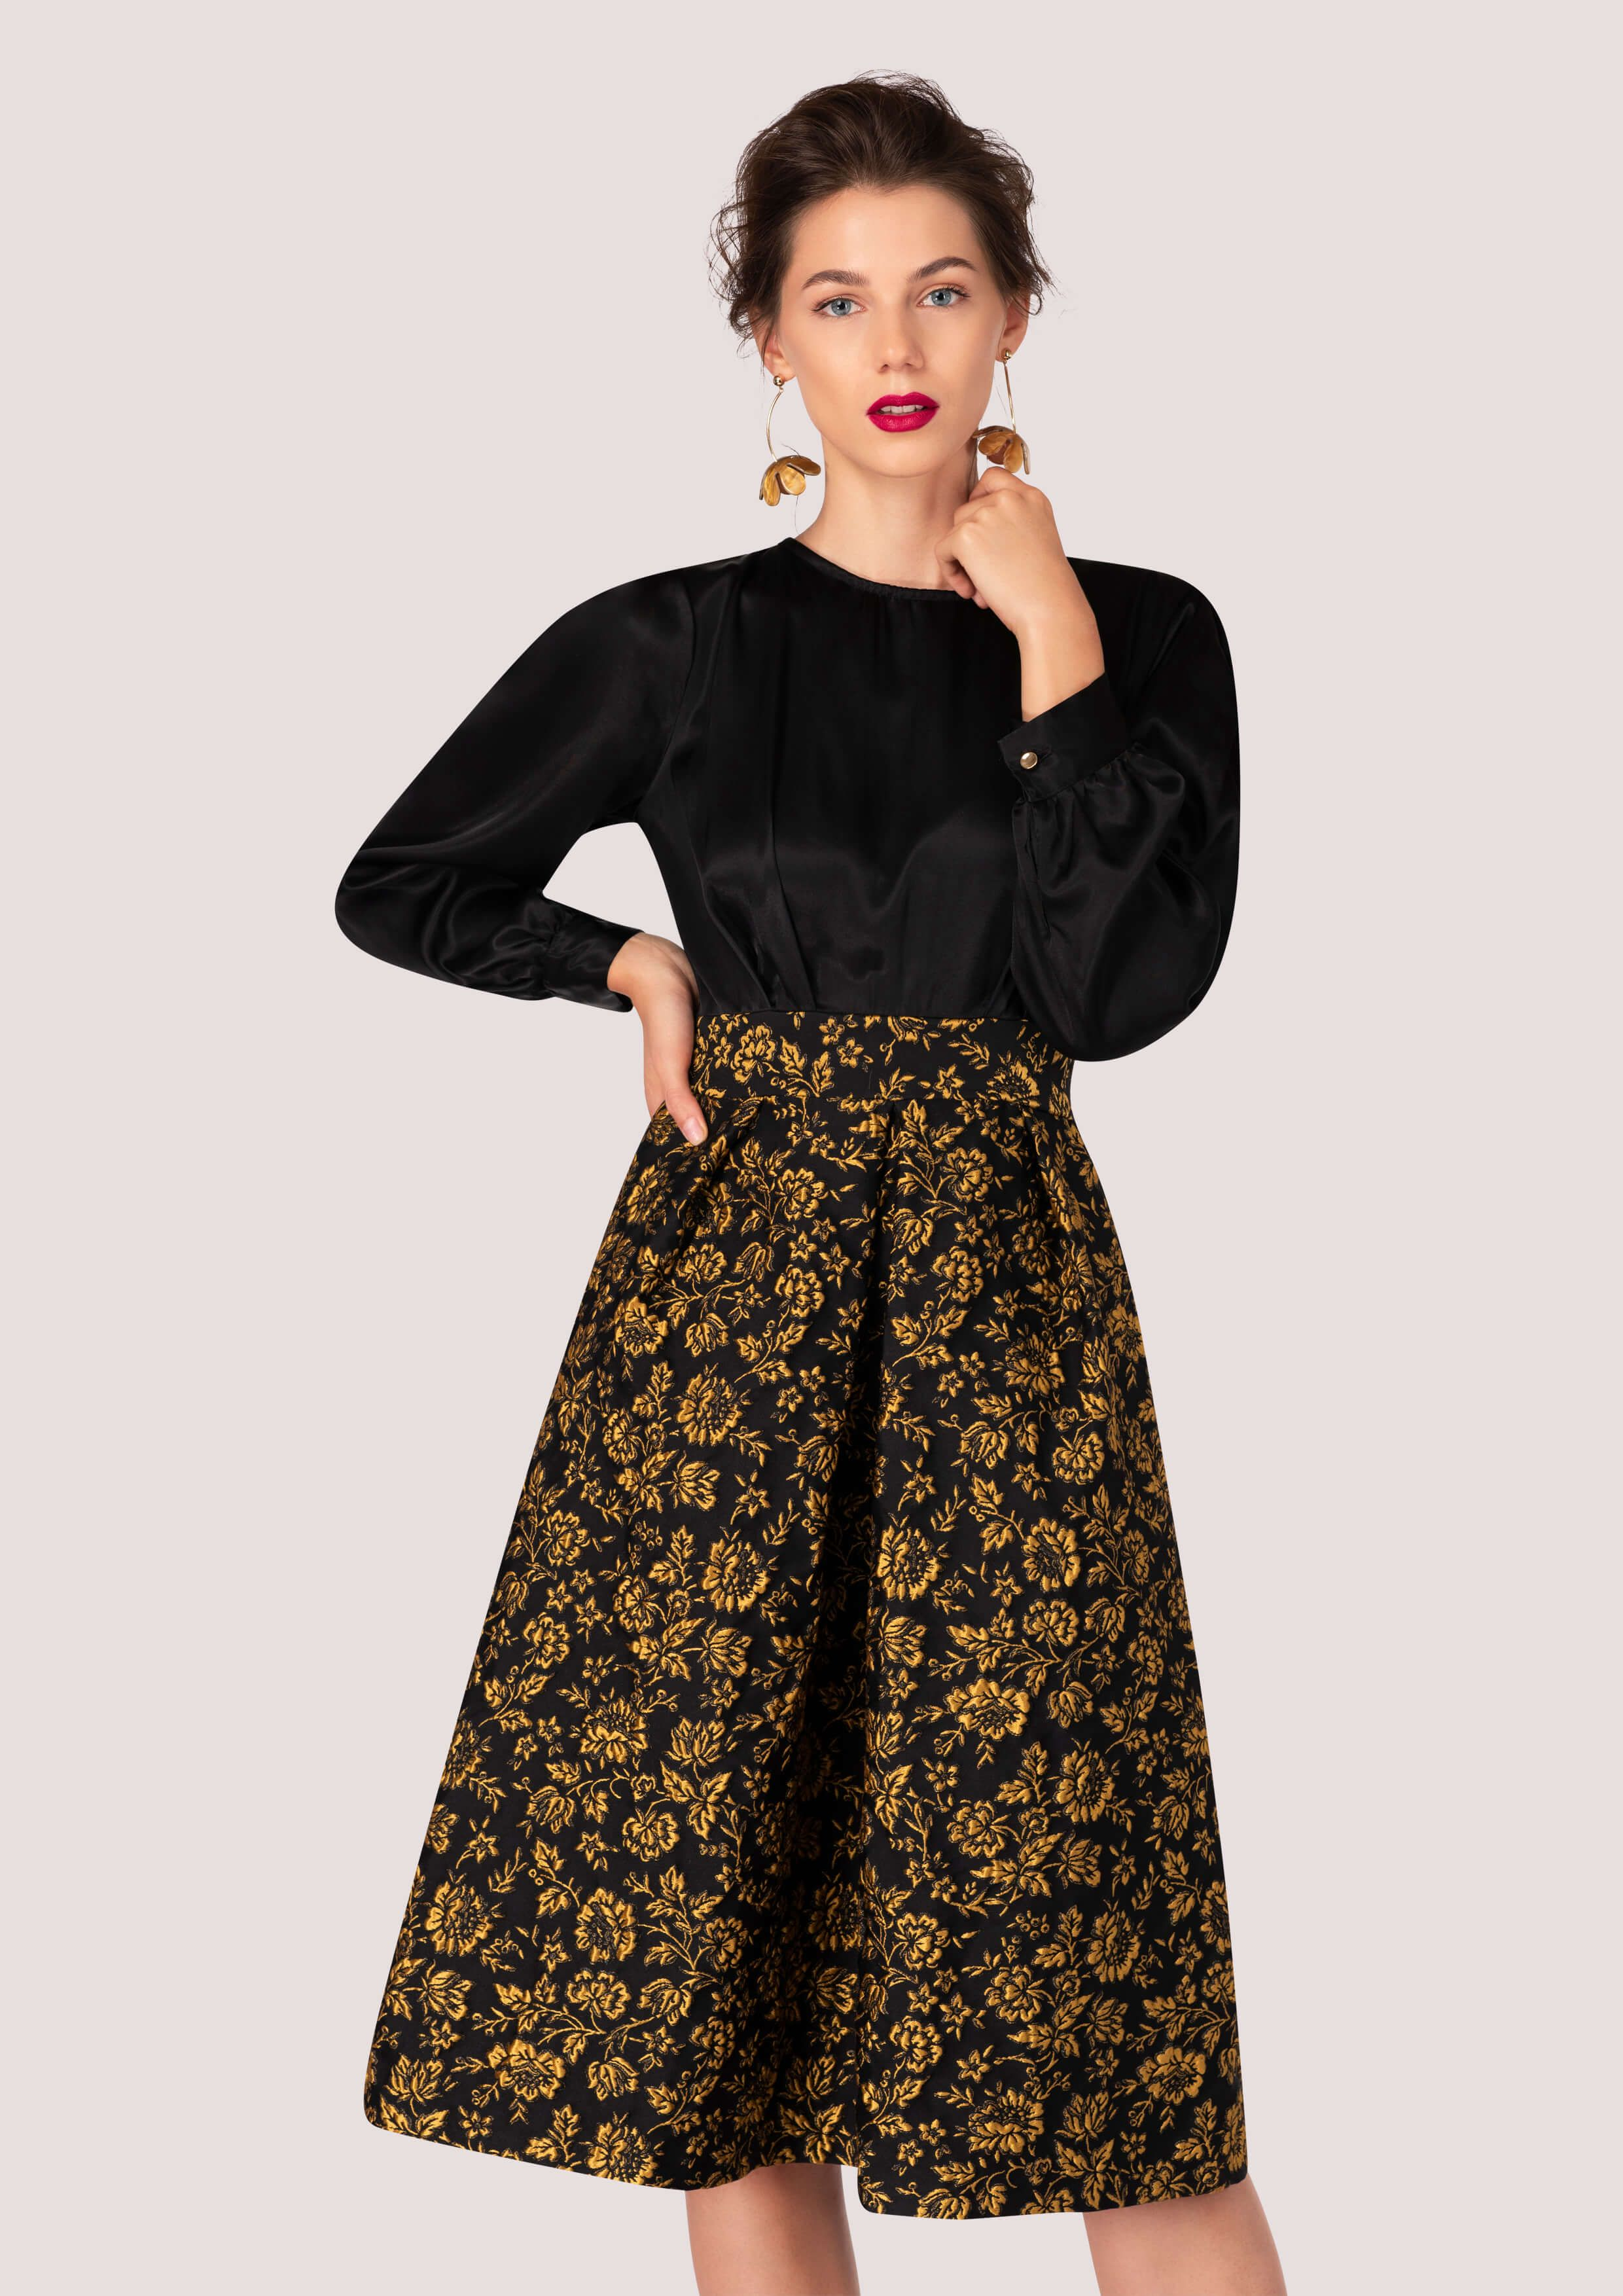 2921405b9cc5 Closet GOLD 2-in-1 Dress With Floral Jacquard Skirt | BOHEMIAN ...